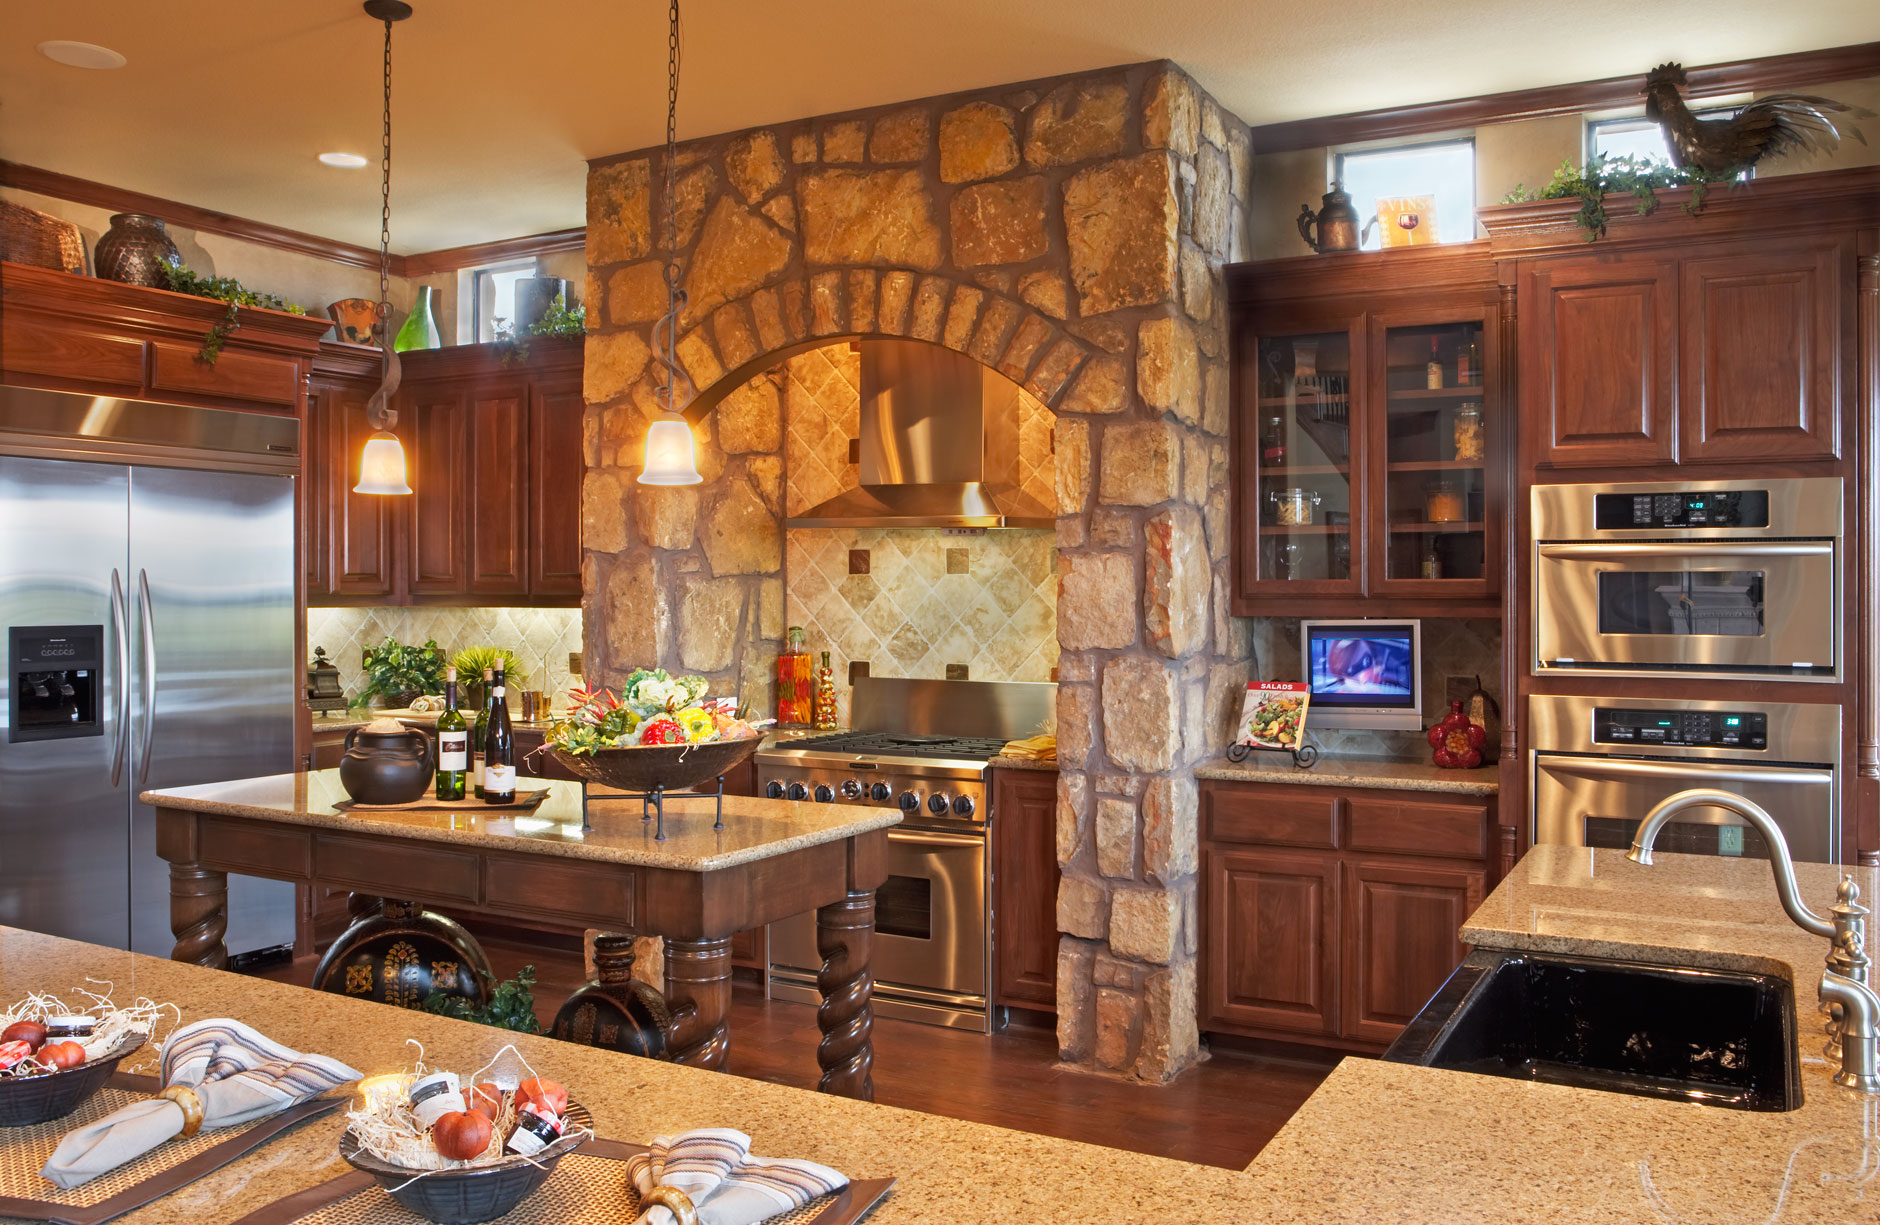 Kitchen cabinet 2 is shown with C101 - OE1, IE1, RP1 cabinet doors in Cherry, Select